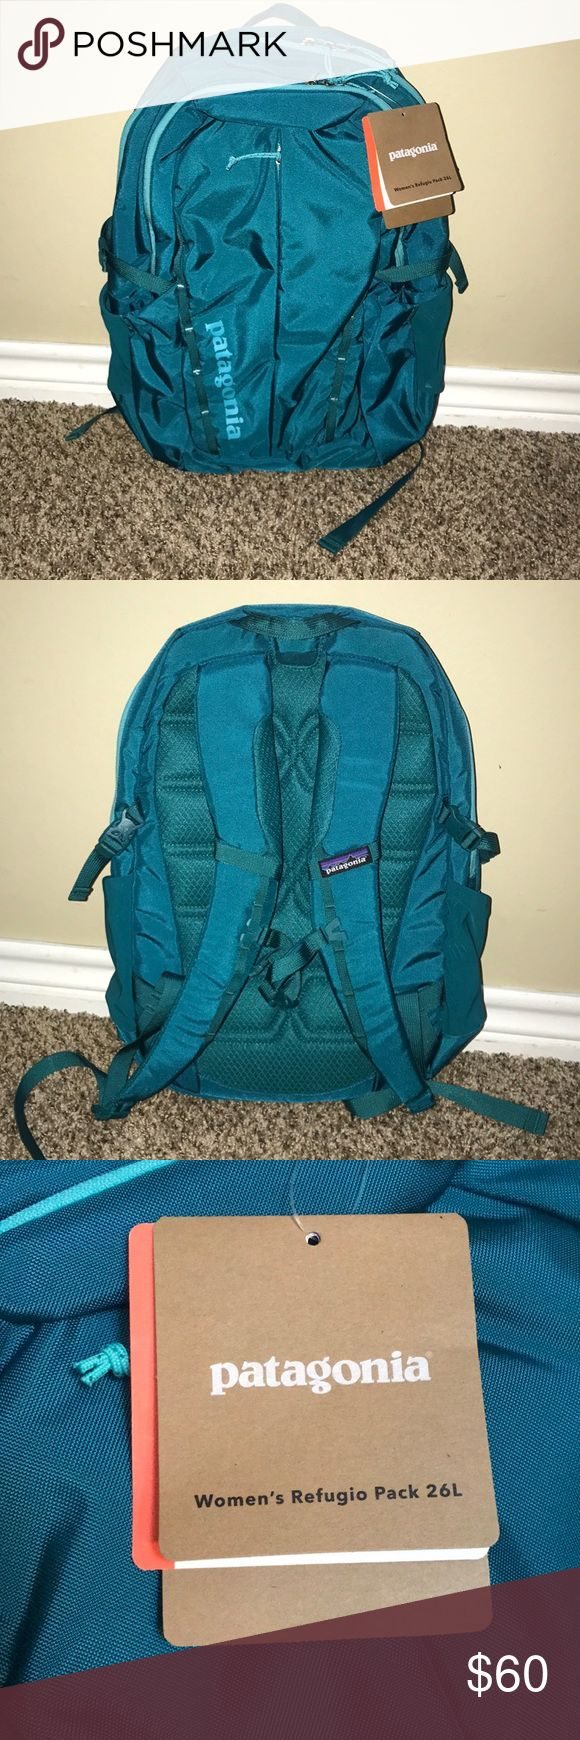 """Women's Patagonia Refugio Pack Brand new Patagonia backpack with 15"""" laptop compartment, internal organization, stretch water bottle pockets, women's specific harness for a great fit, and a soft mesh back panel and straps for carrying comfort. Patagonia Bags Backpacks"""